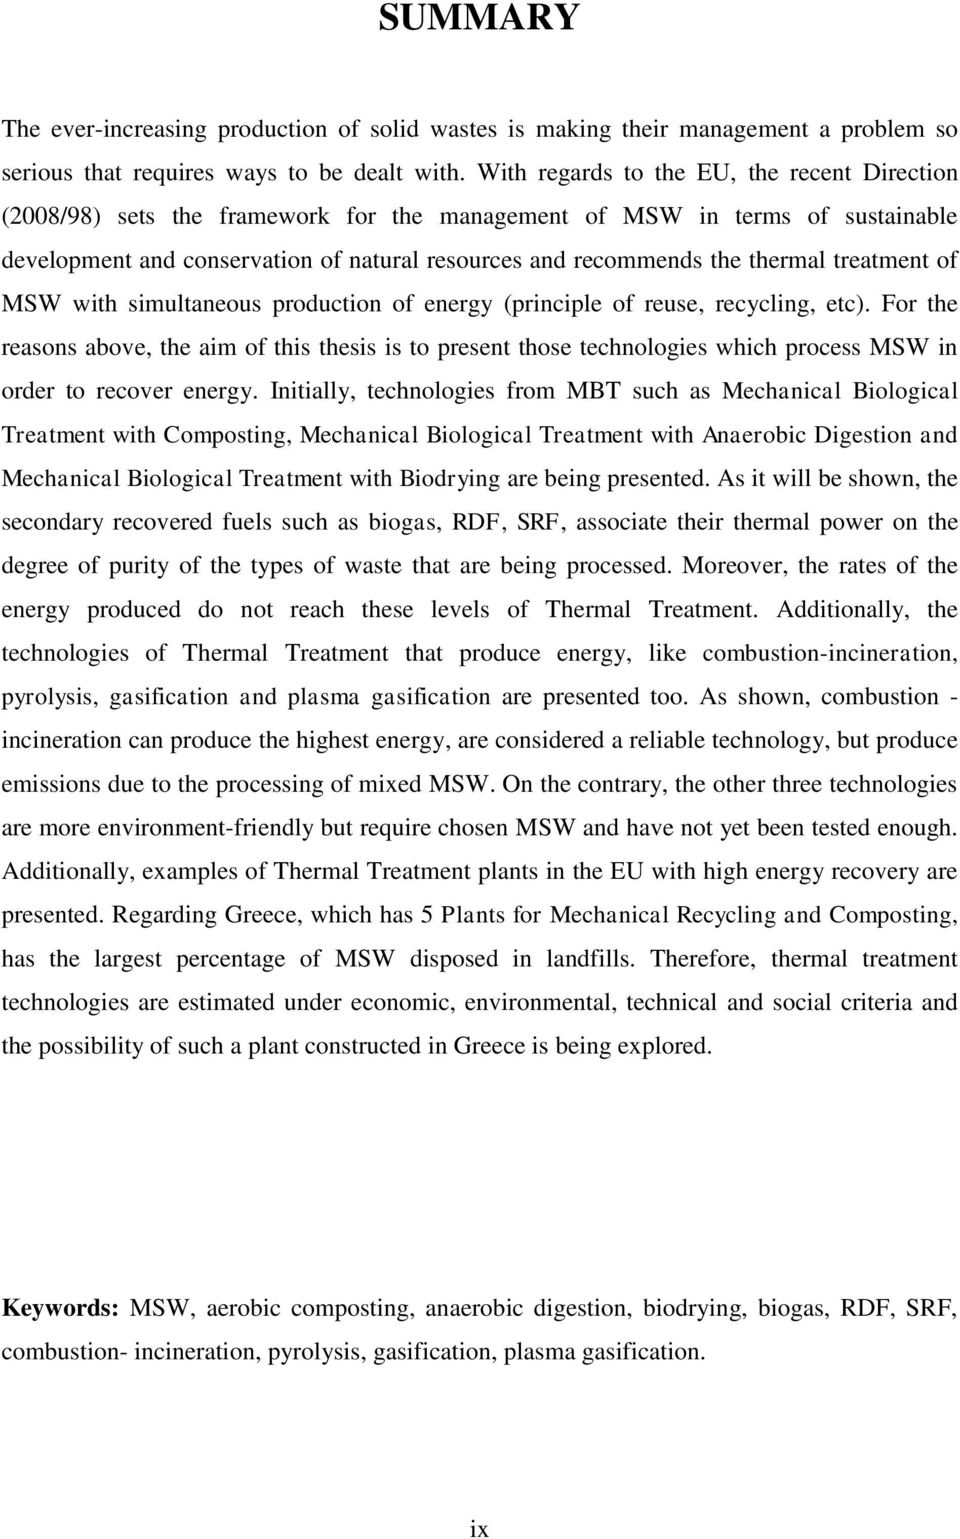 thermal treatment of MSW with simultaneous production of energy (principle of reuse, recycling, etc).